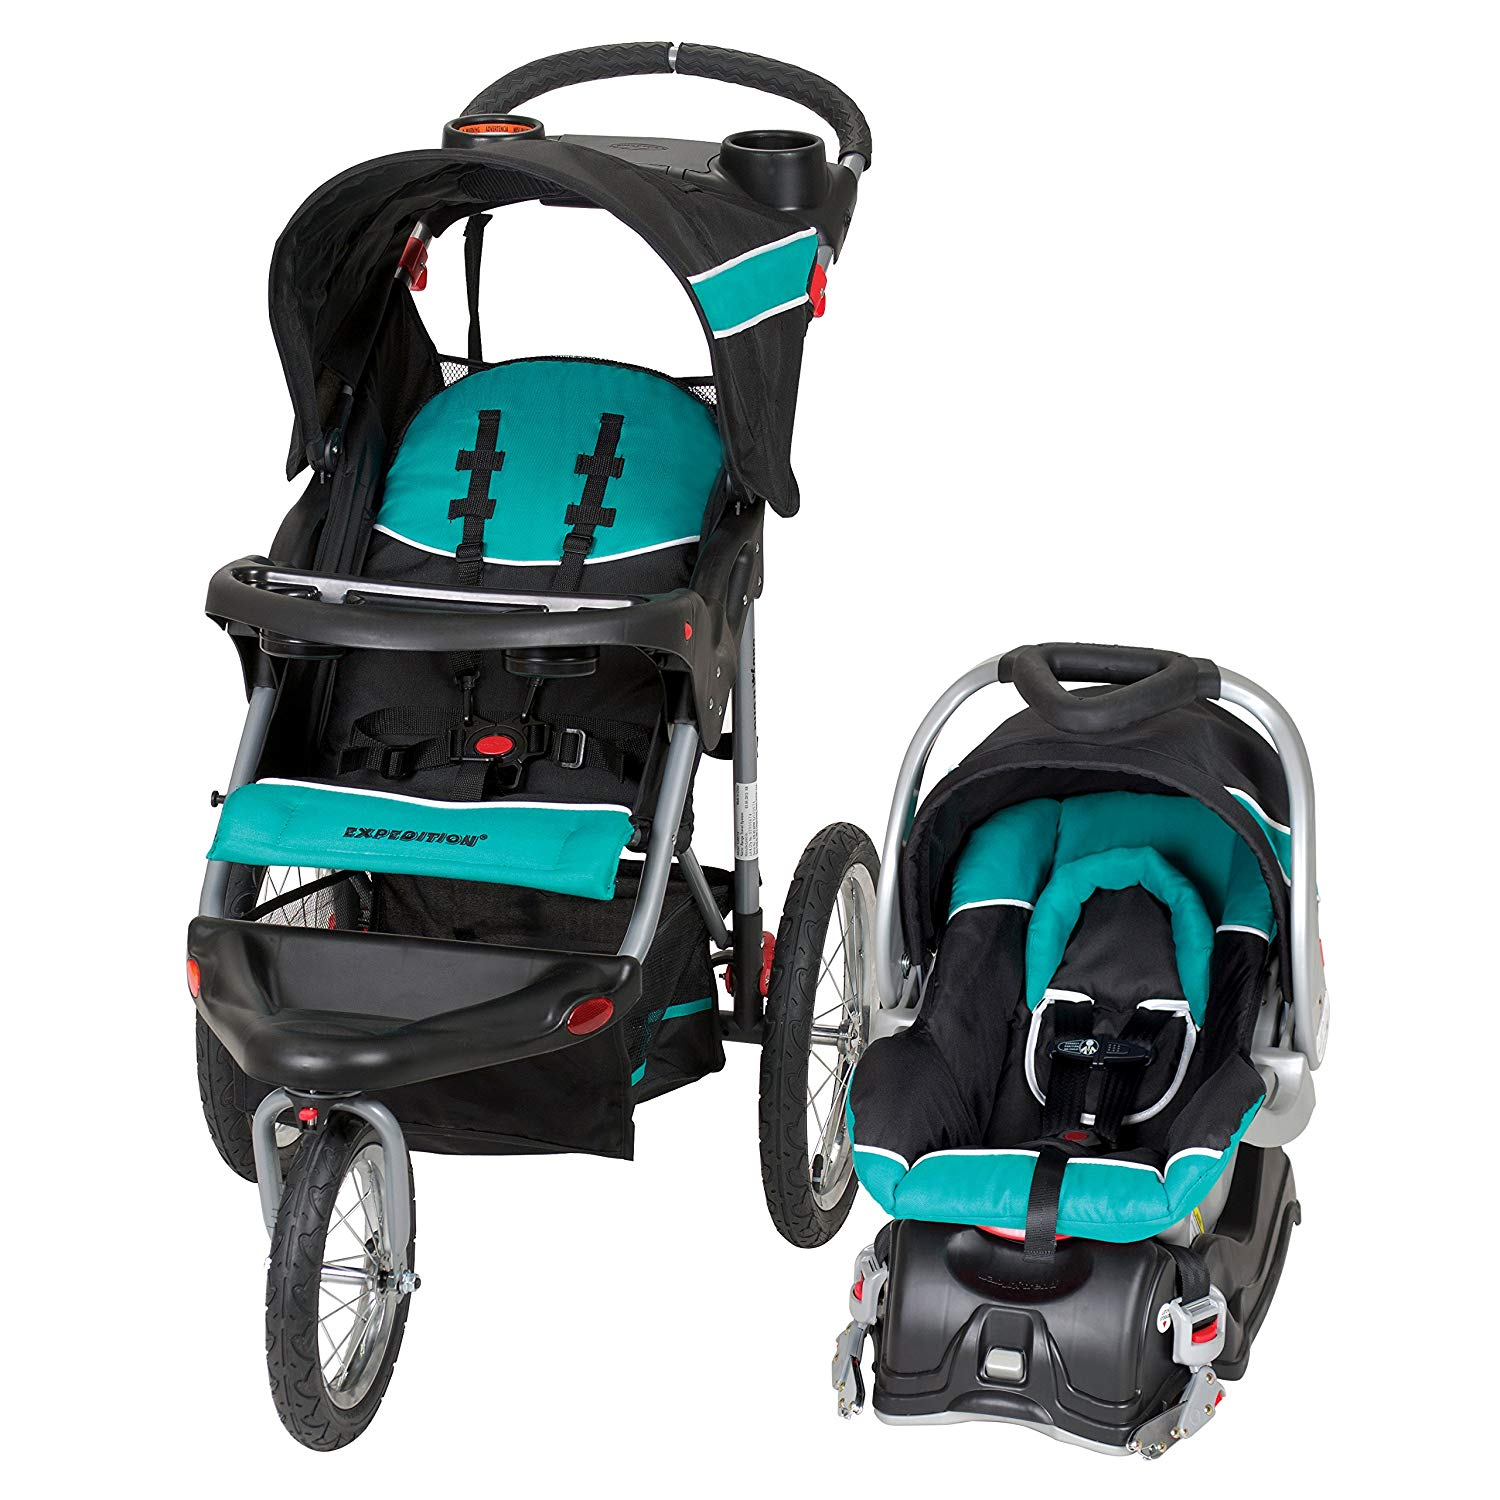 Baby Trend Expedition Travel Jogger Review